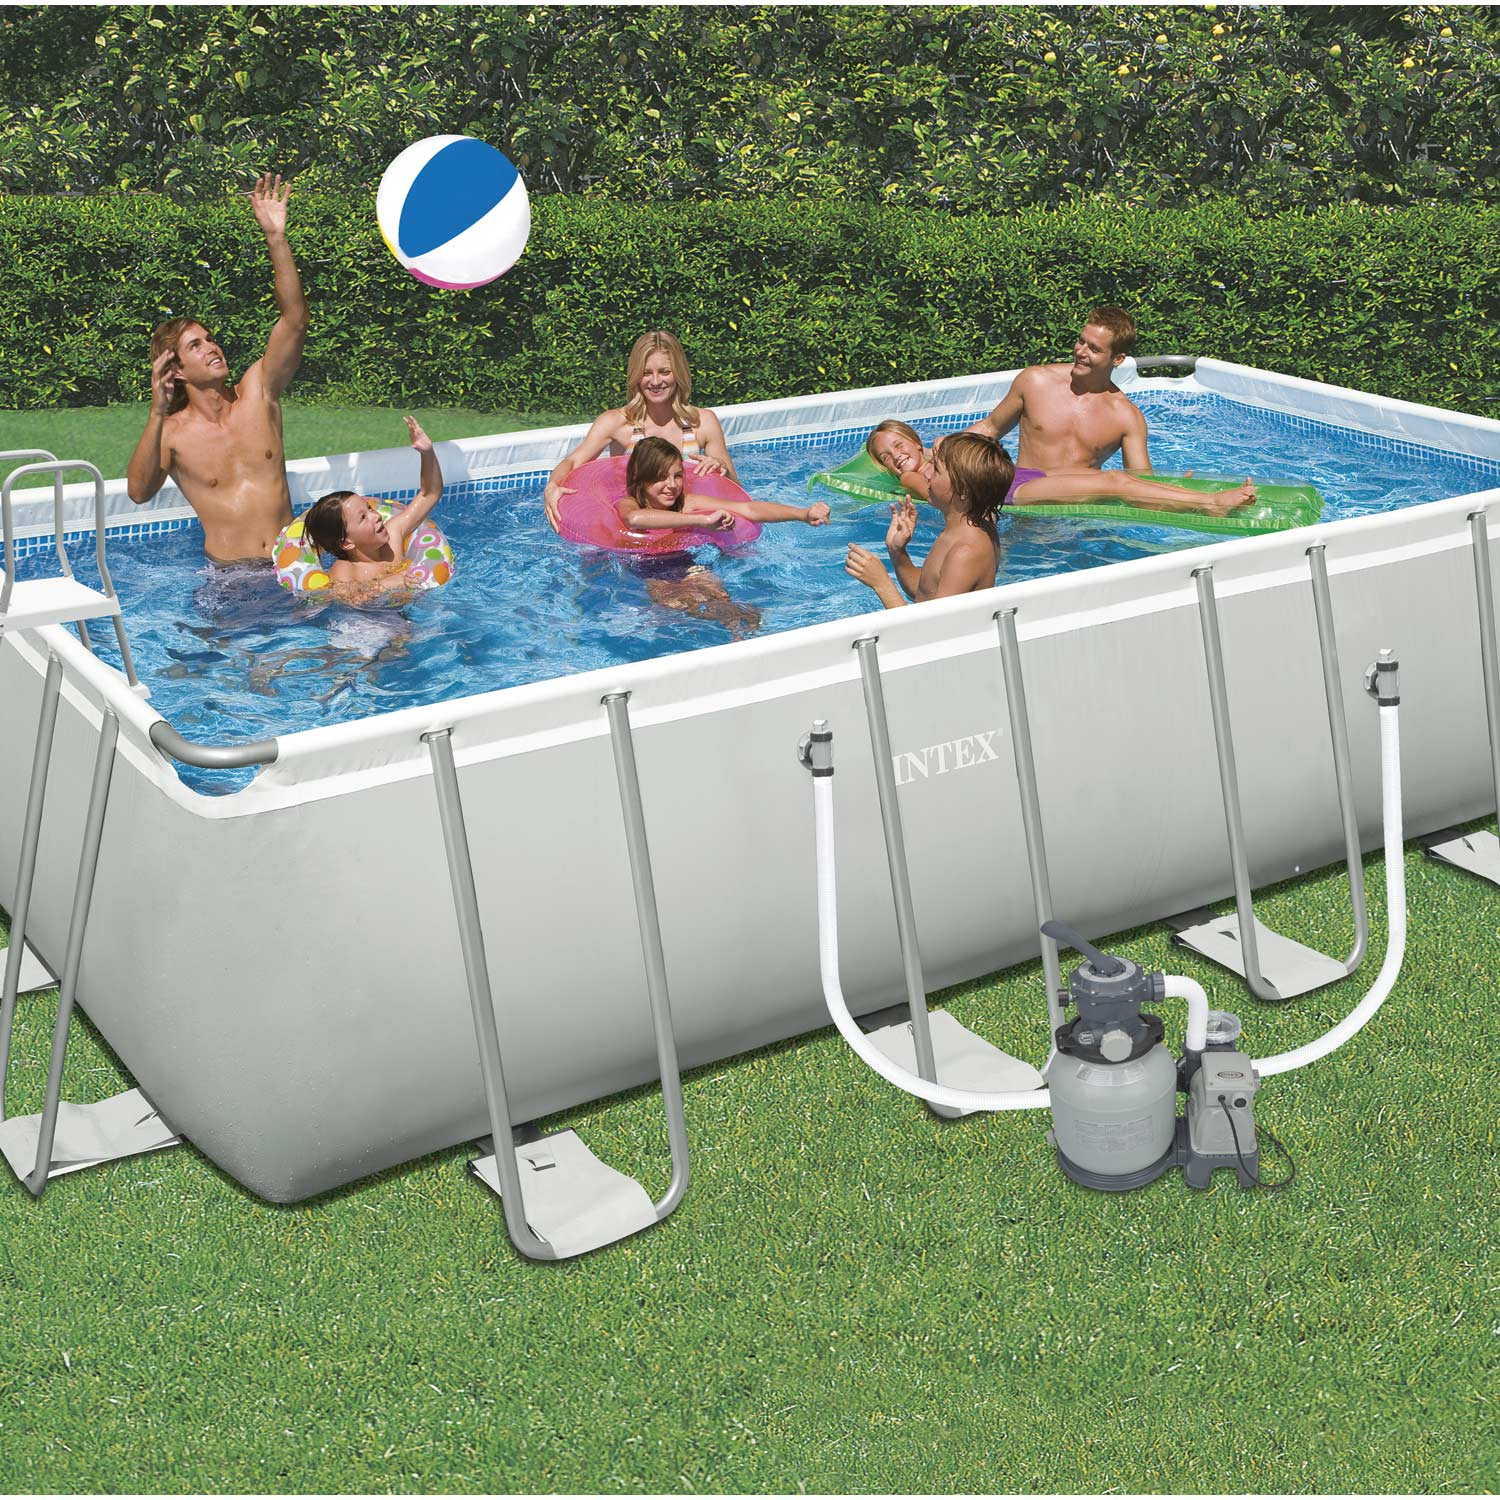 Piscine hors sol autoportante tubulaire ultra silver intex for Piscine exterieure hors sol